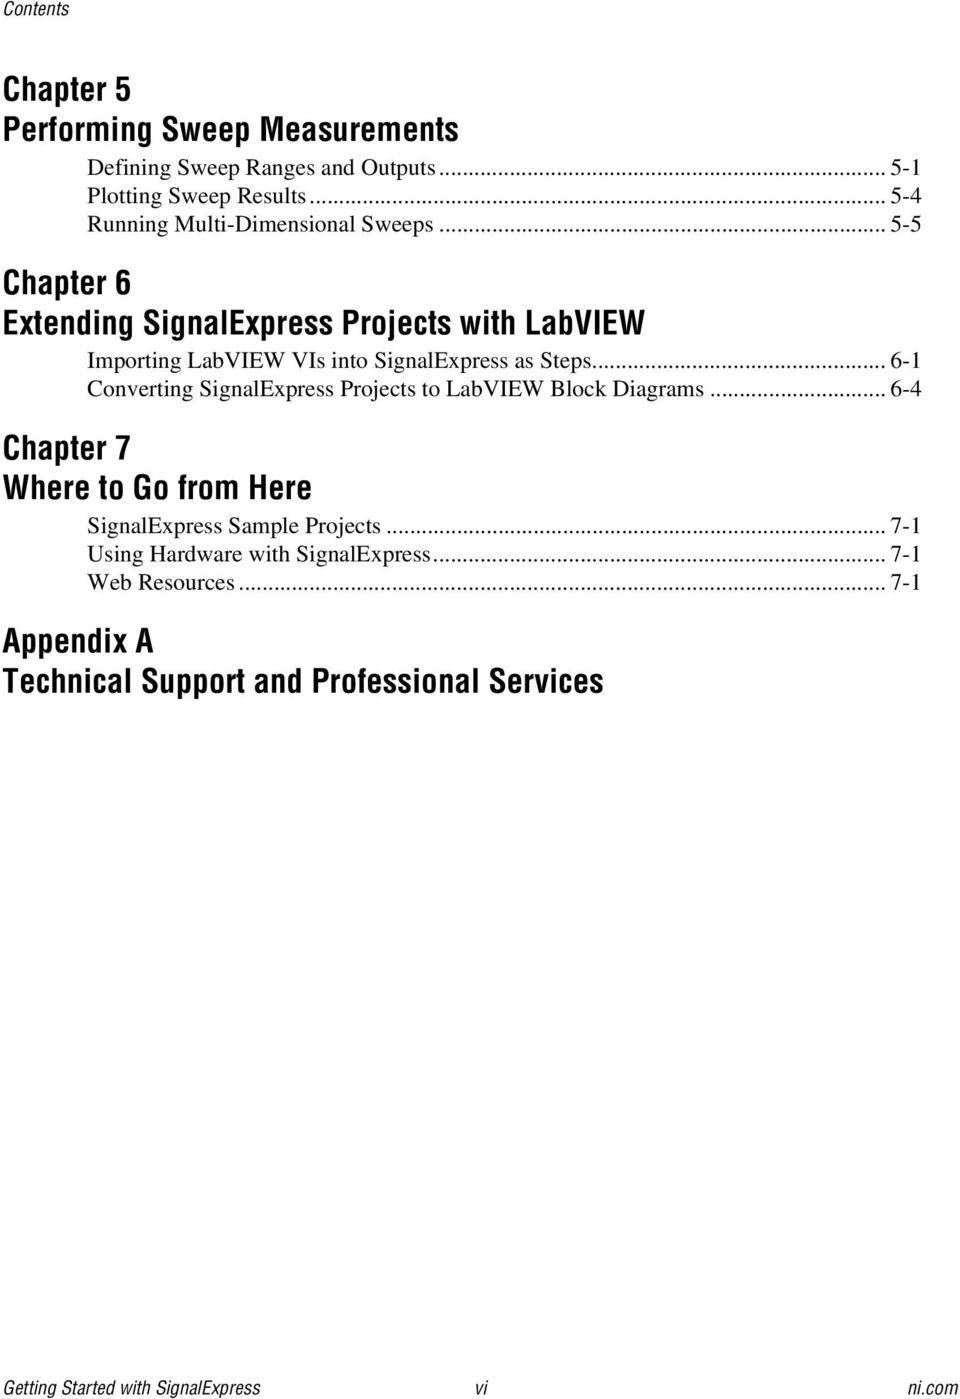 .. 5-5 Chapter 6 Extending SignalExpress Projects with LabVIEW Importing LabVIEW VIs into SignalExpress as Steps.